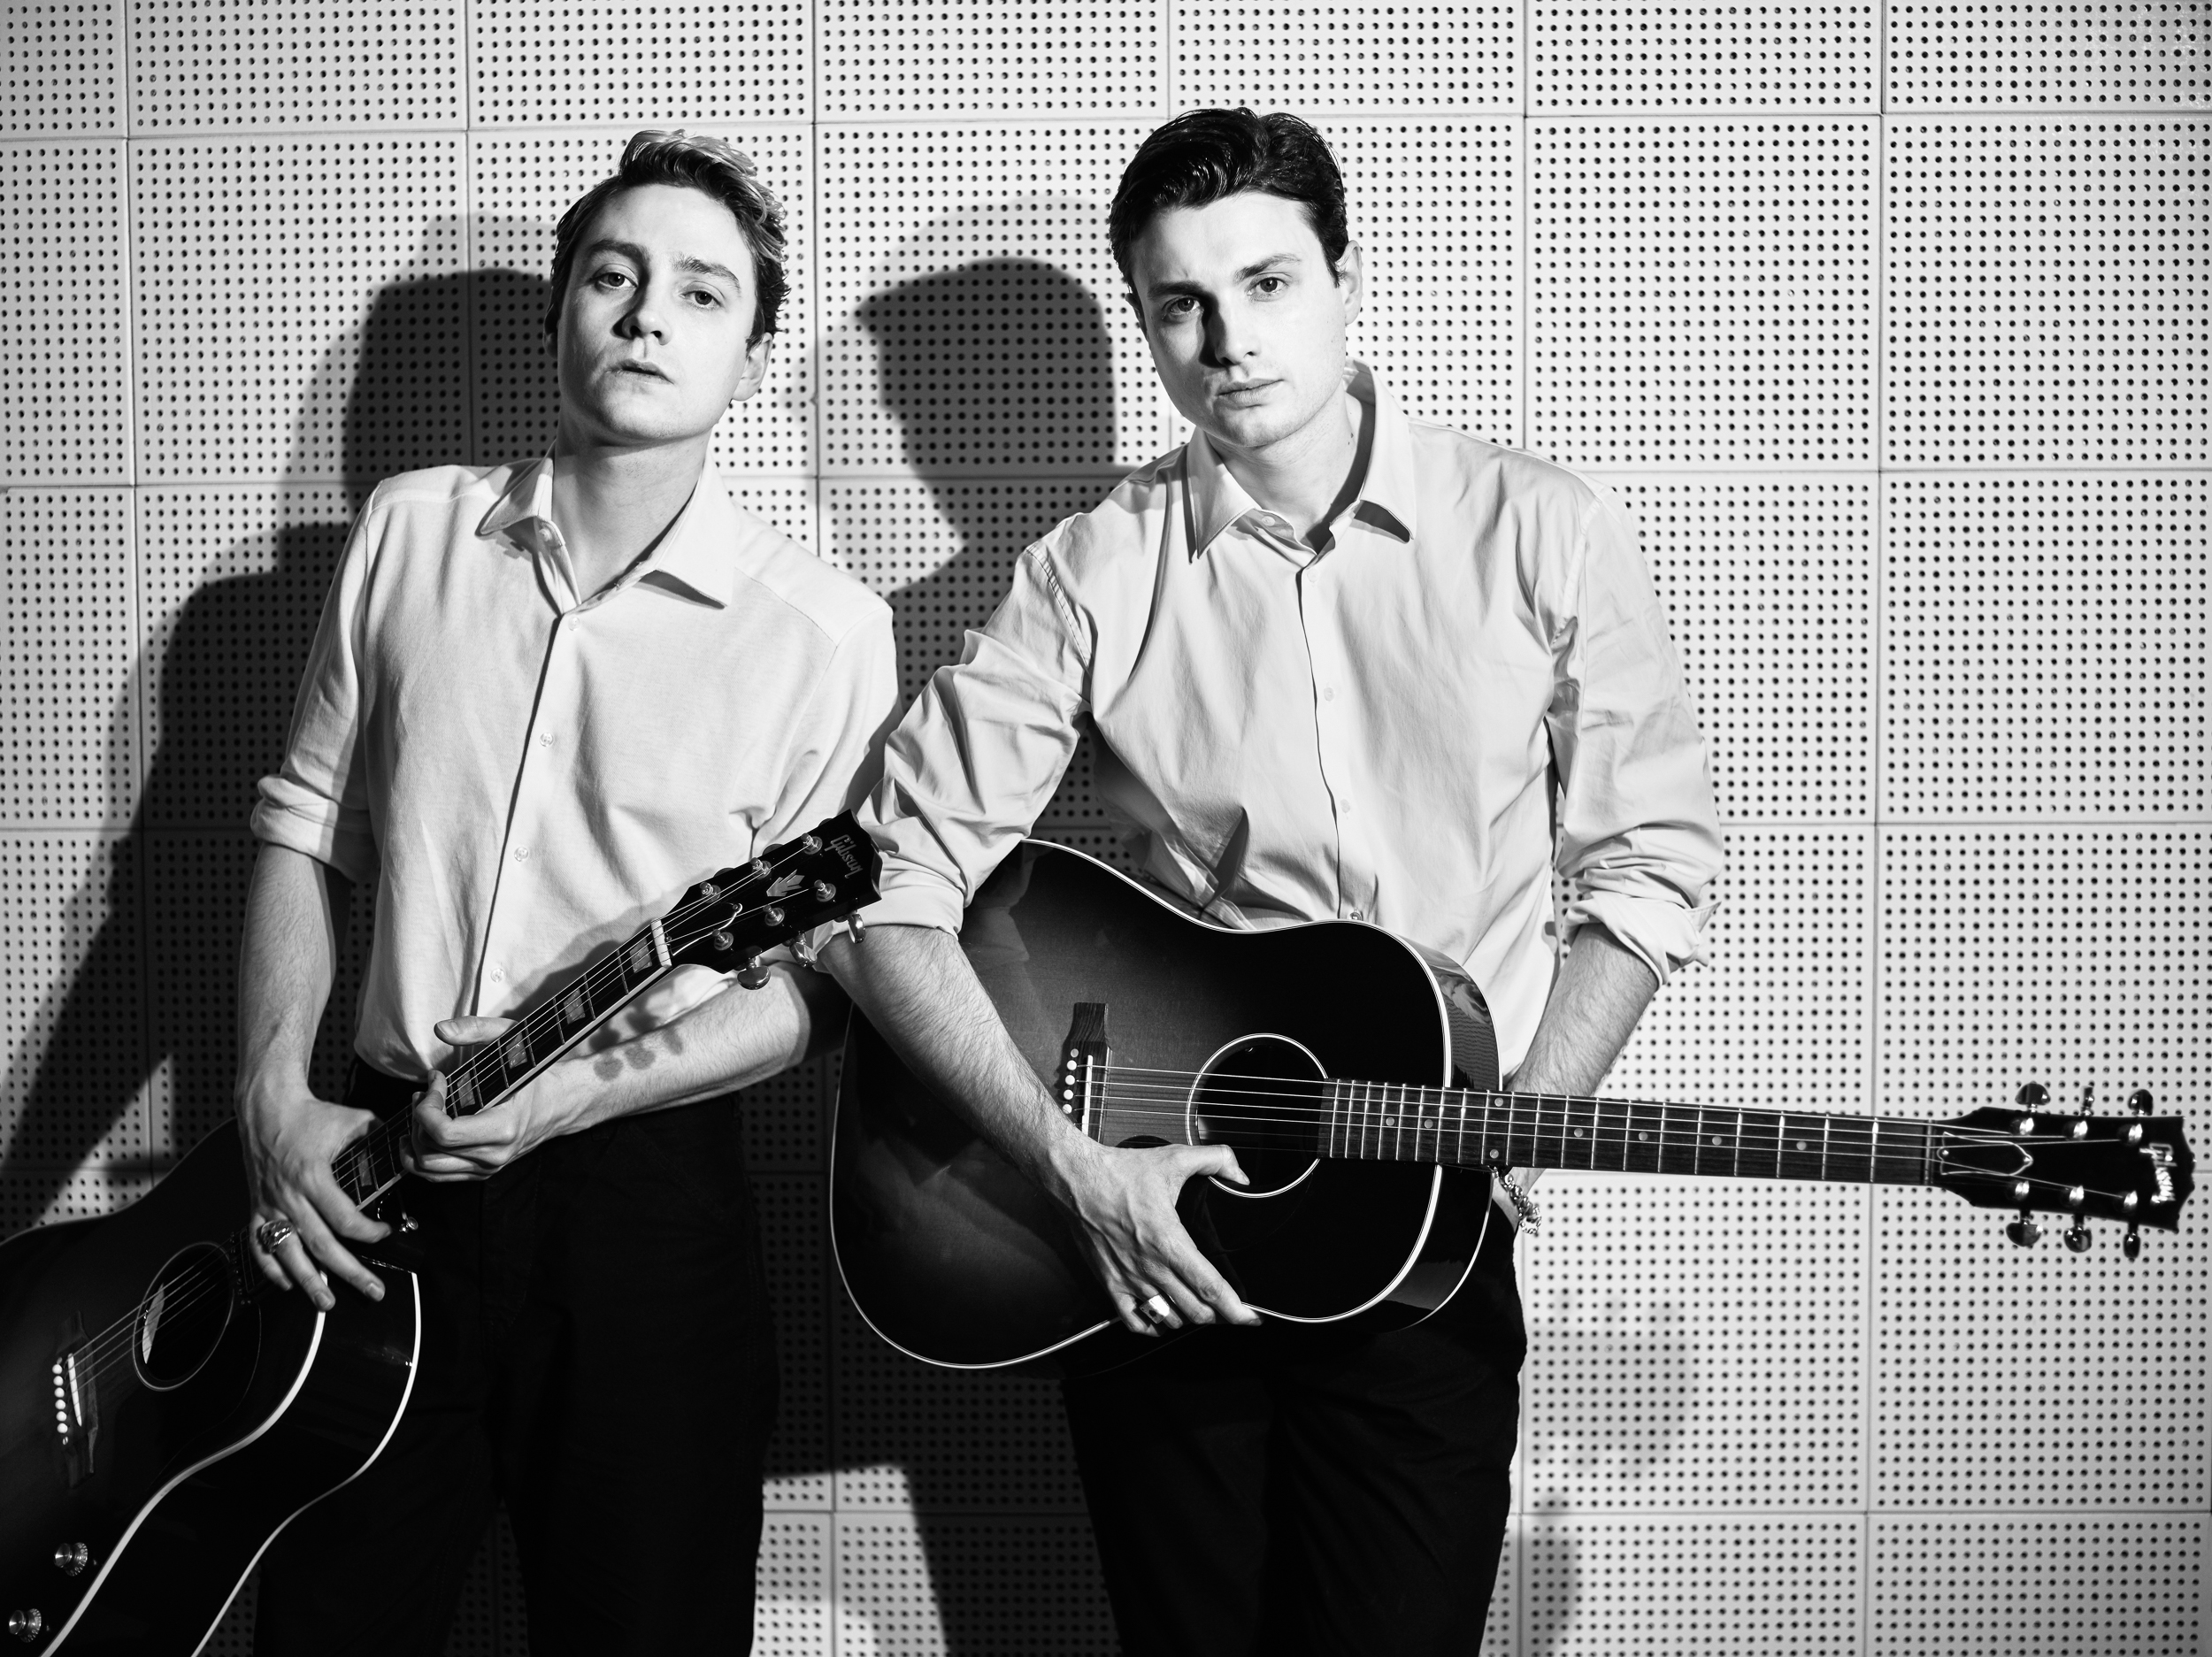 The Ruen Brothers